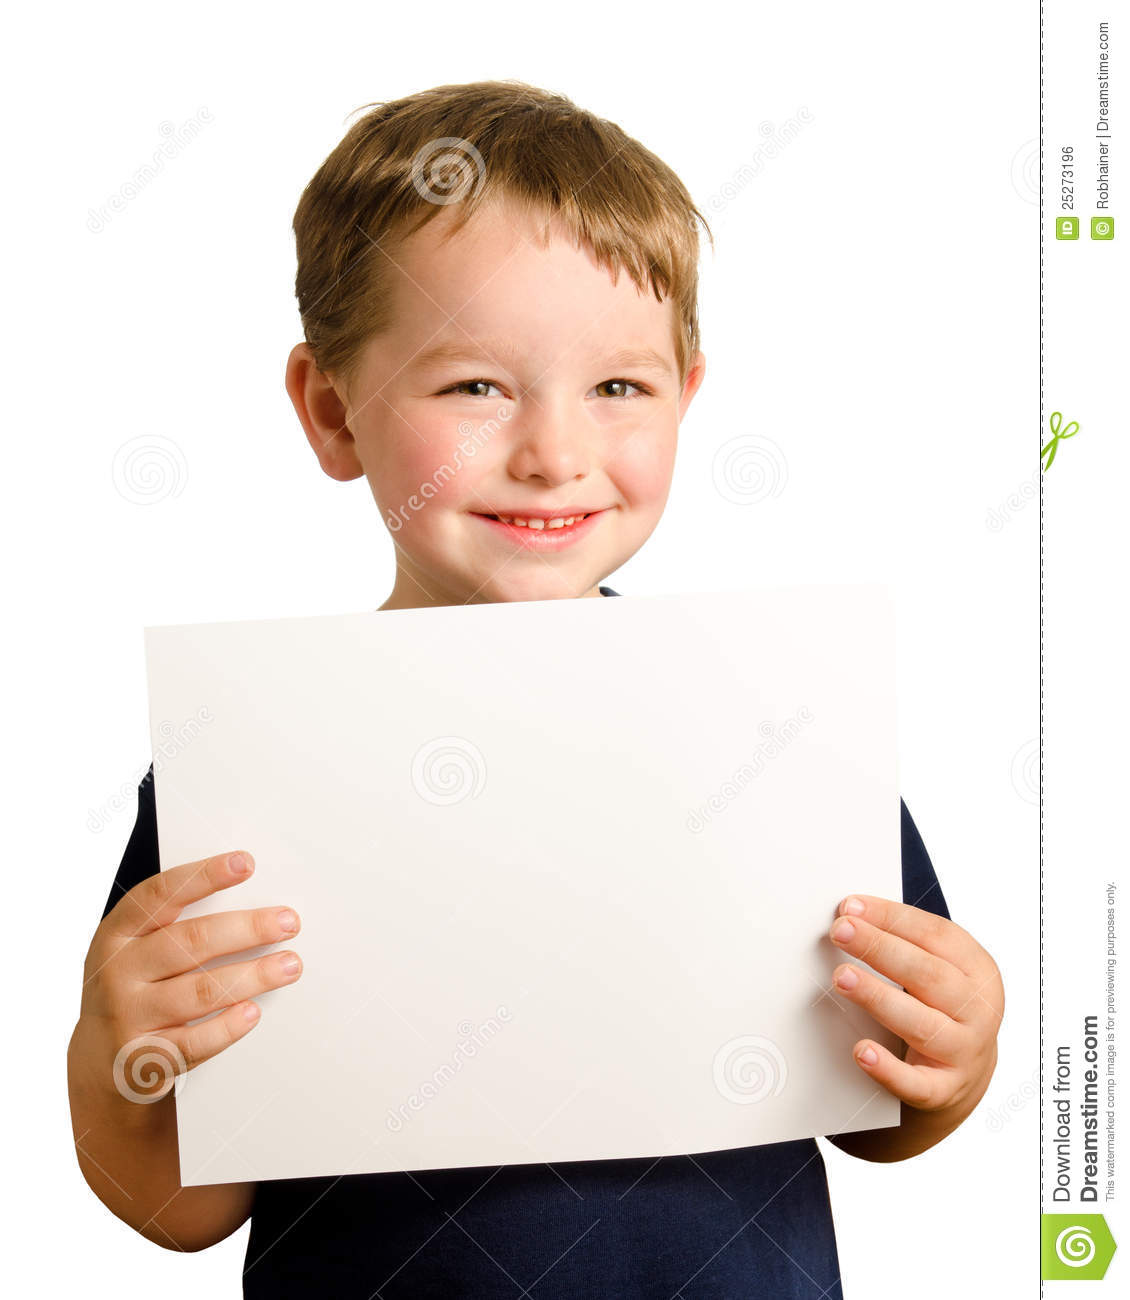 Cute young happy preschooler boy holding up sign